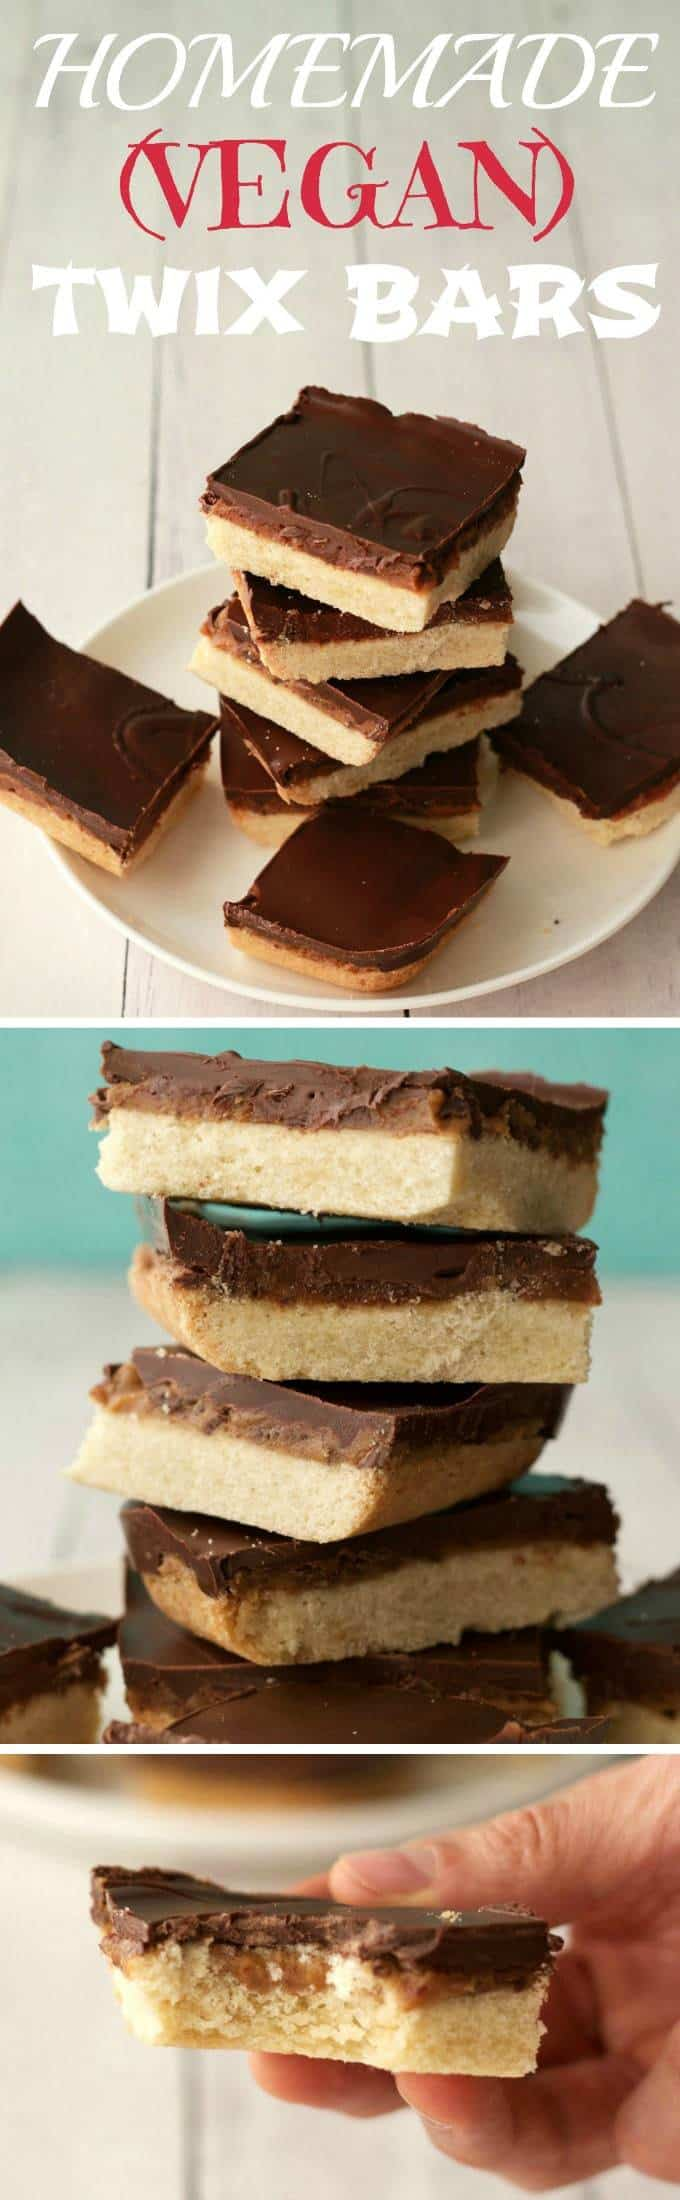 Vegan homemade twix bars, a perfectly crunchy shortbread base, with a creamy gooey date caramel center and a vegan dark chocolate topping. | lovingitvegan.com